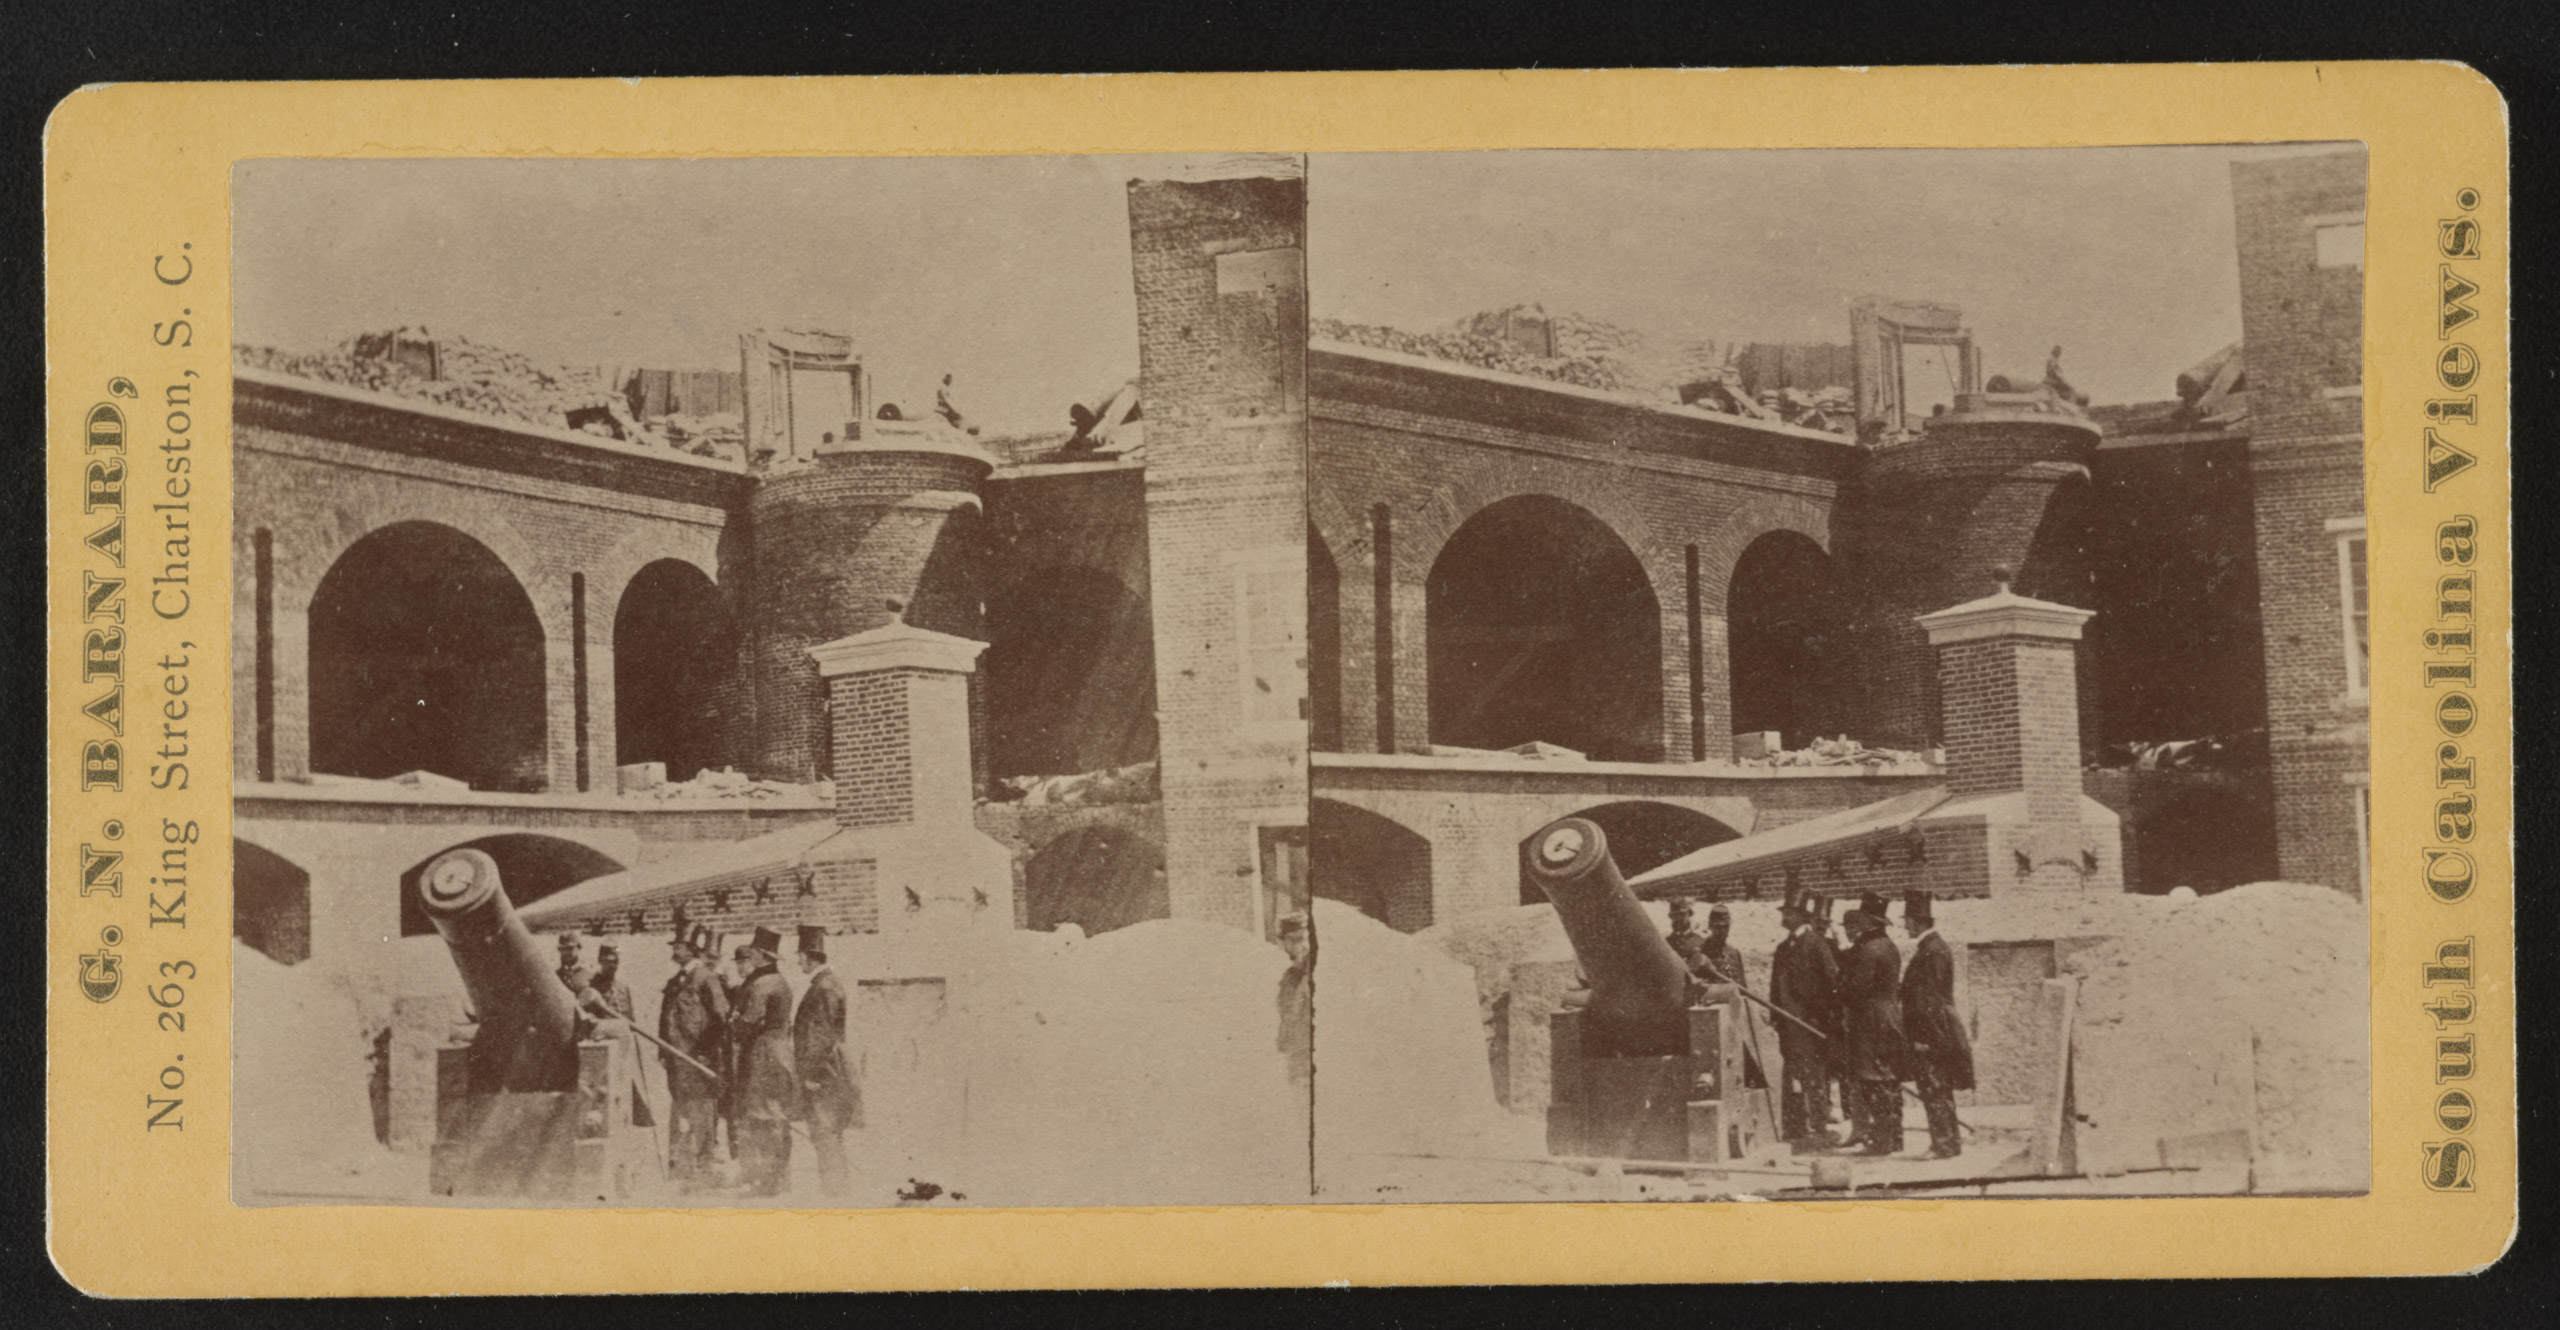 Fort Sumter, stereograph shows a group of men, possibly including Governor Francis Pickens and state Senator Wade Hampton, inspecting a 10 inch Columbiad inside of Fort Sumter after the bombardment. From The Robin G. Stanford Collection.